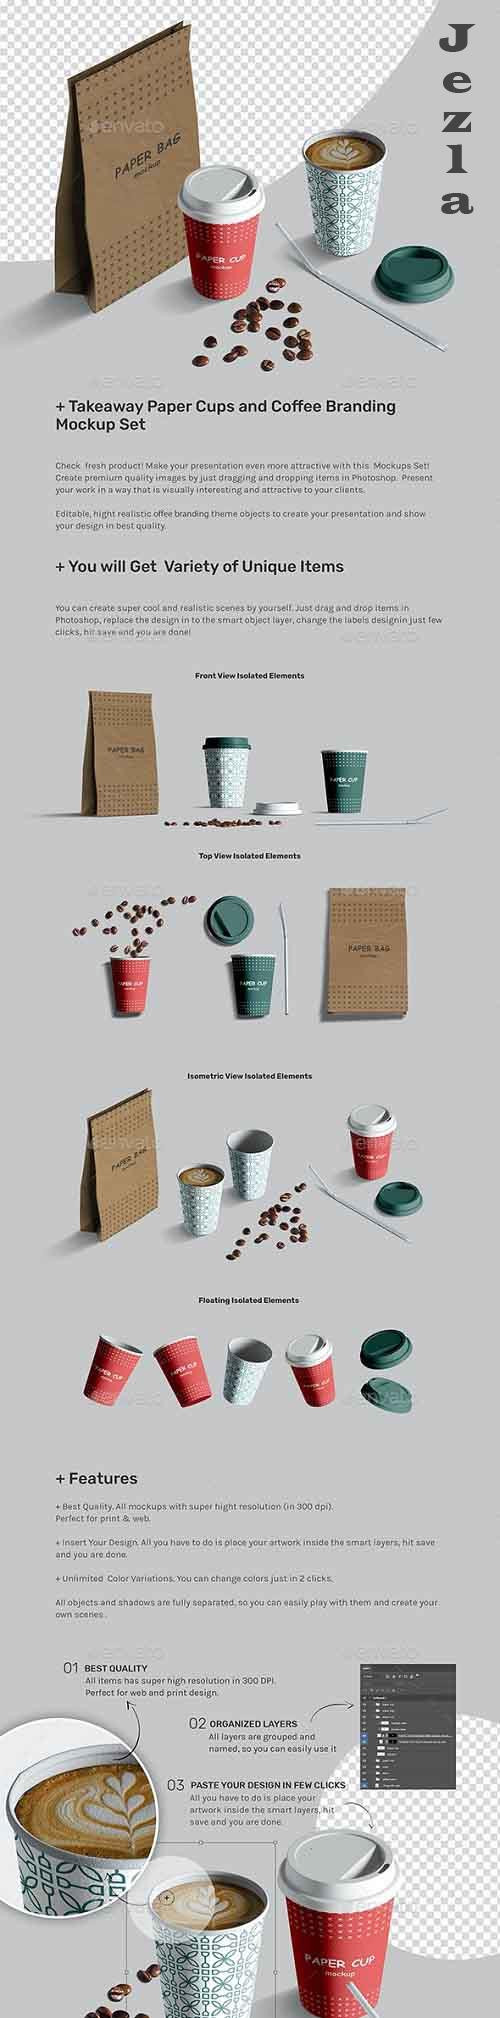 Takeaway Paper Cups and Coffee Branding Mockup Set 27121649